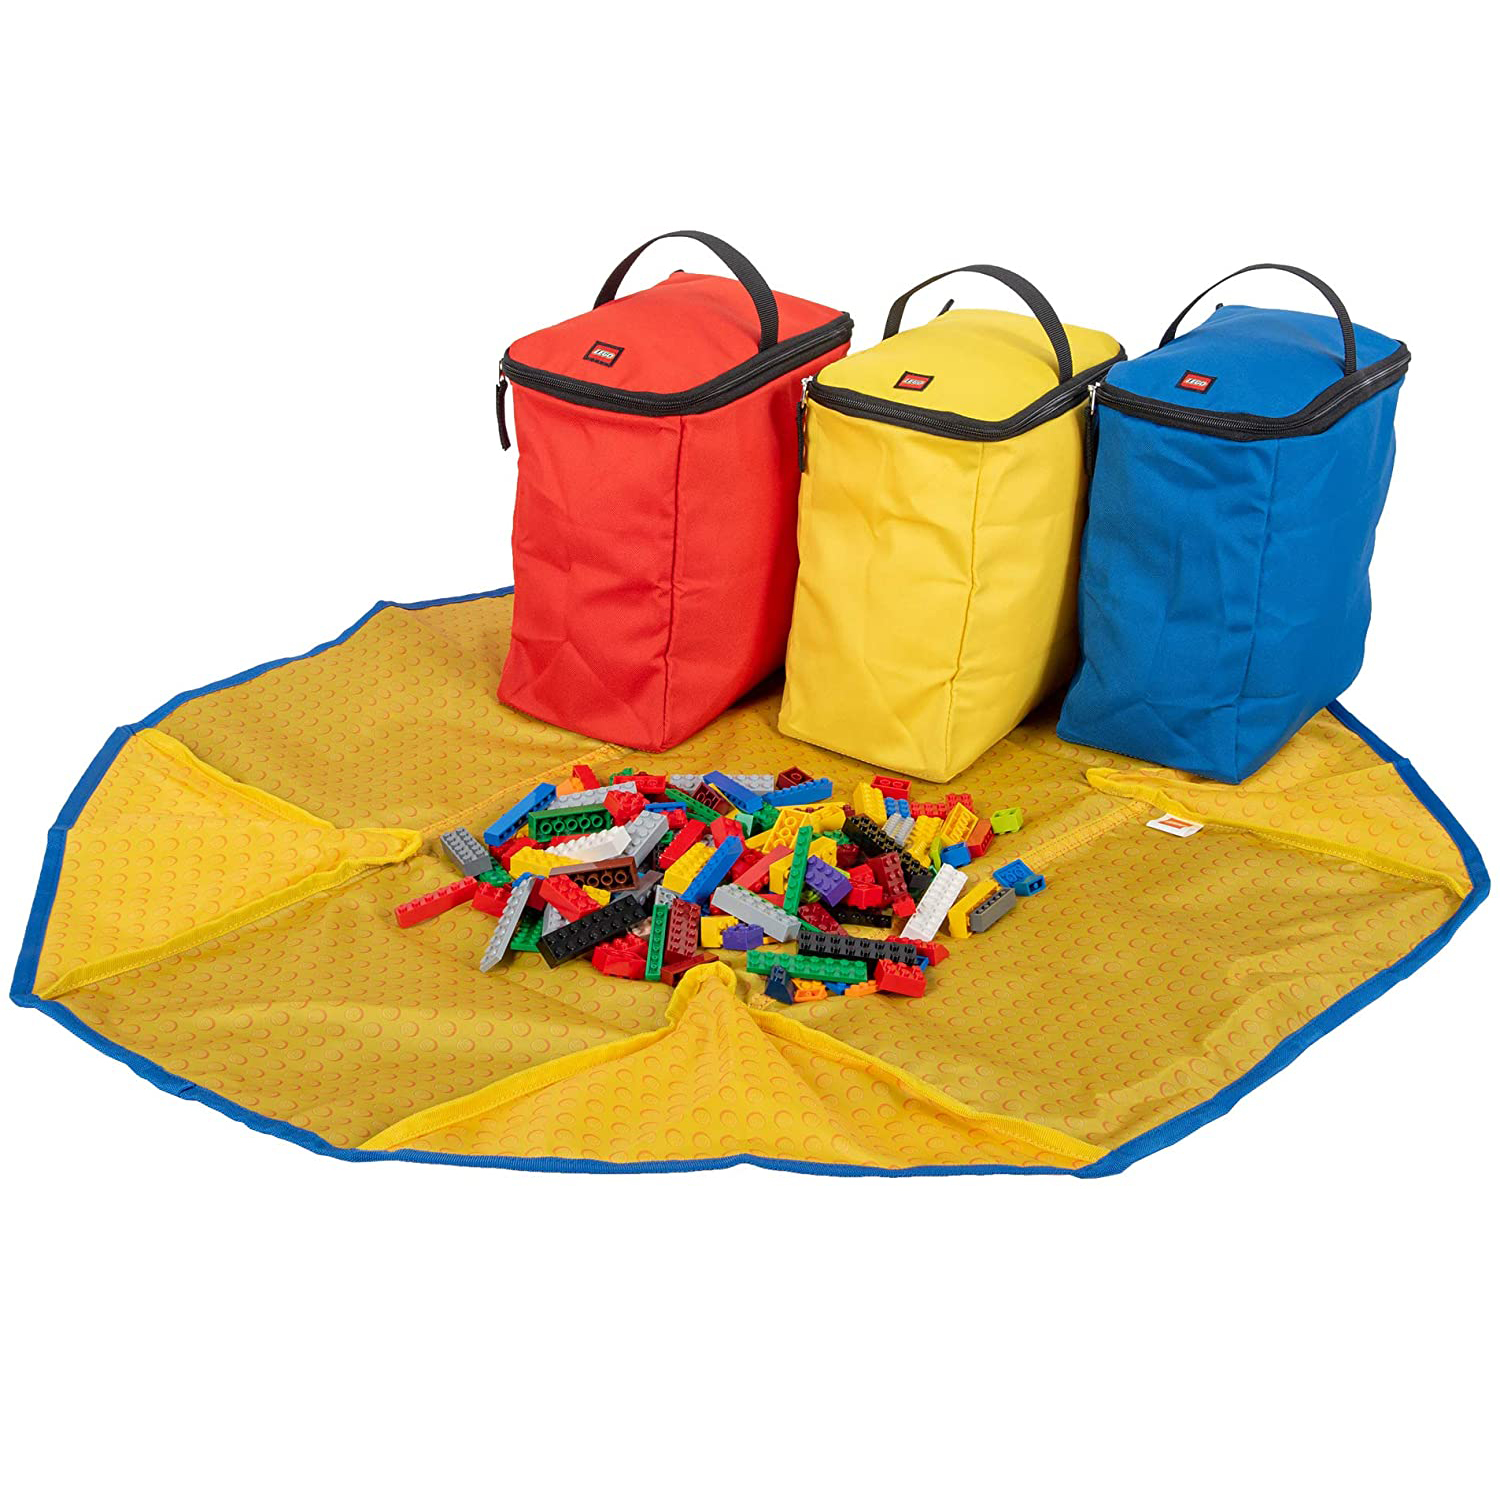 Best Lego Storage Tote: Lego Storage 4-Piece Tote and Play Mat